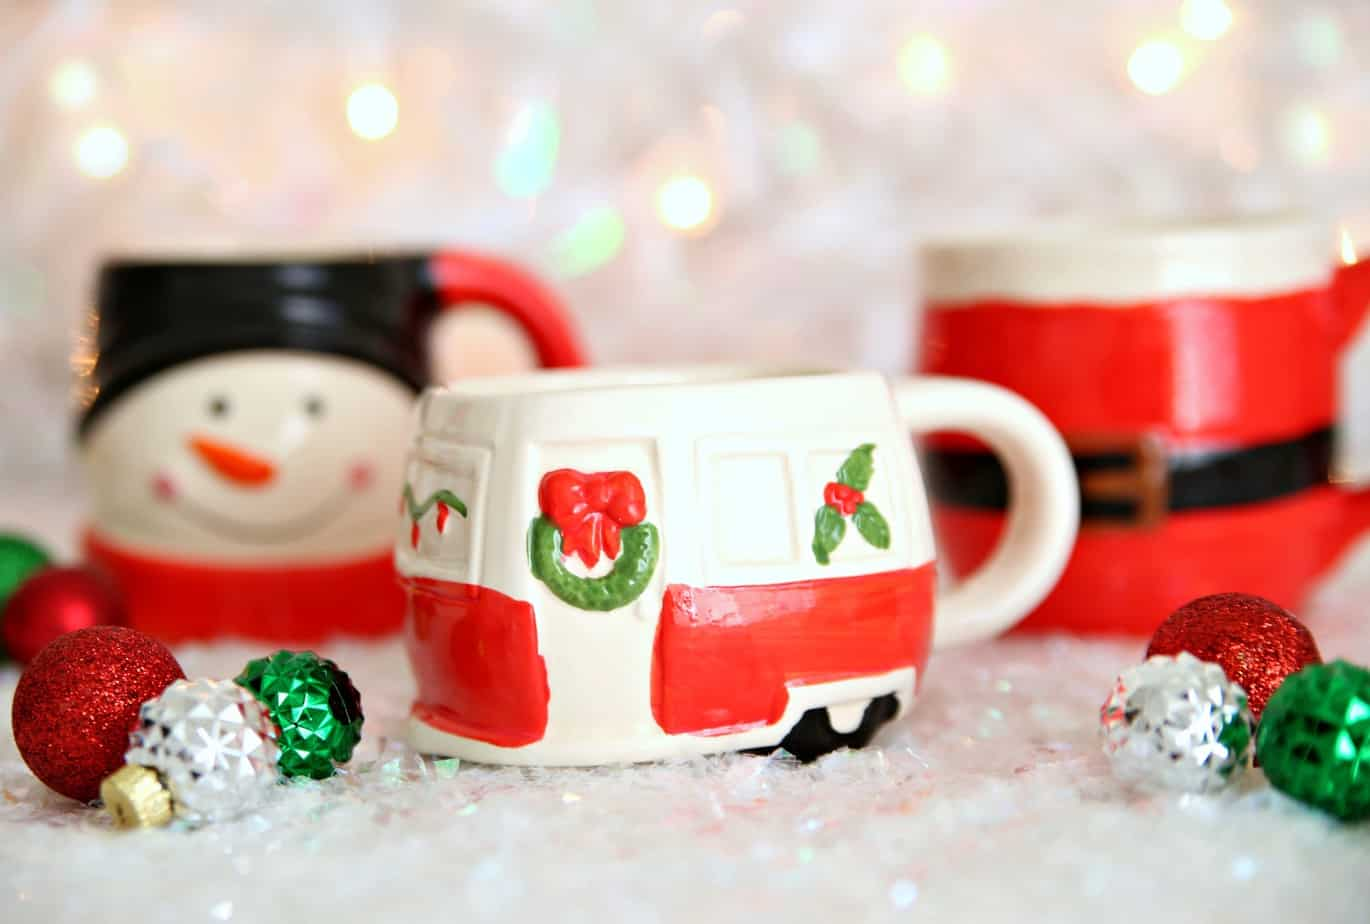 Dollar Store Holiday Mugs